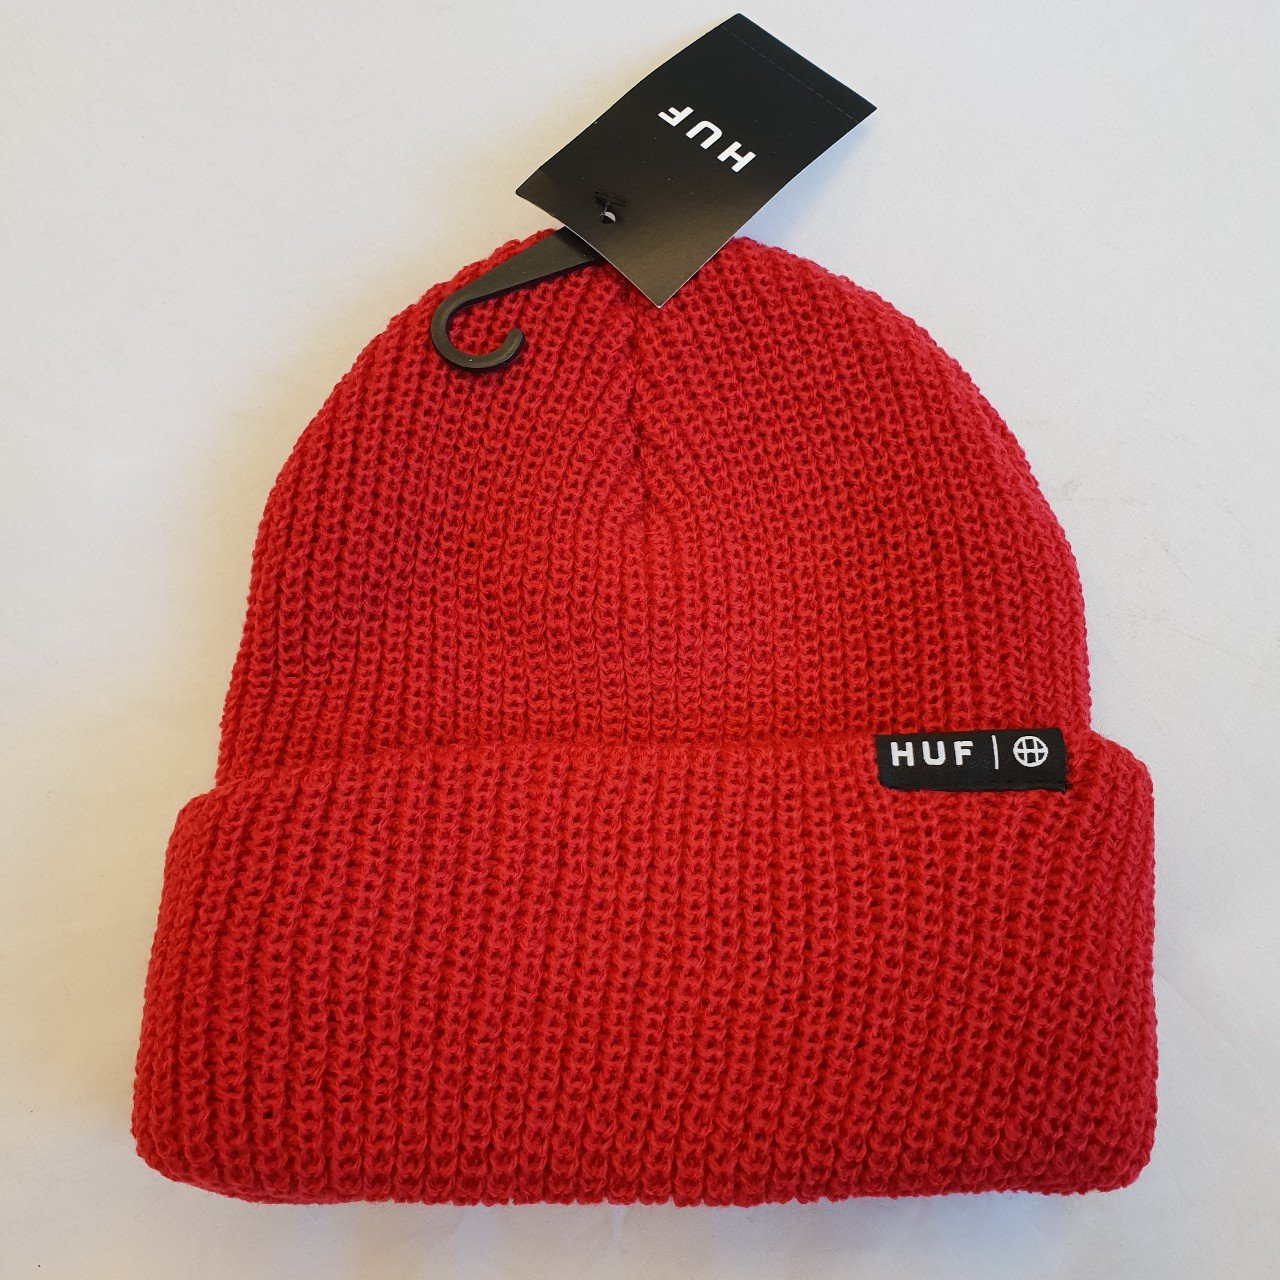 HUF Usual Beanie Brand New in Red  beanie  headwear  hat - Depop 04d0b37ca29